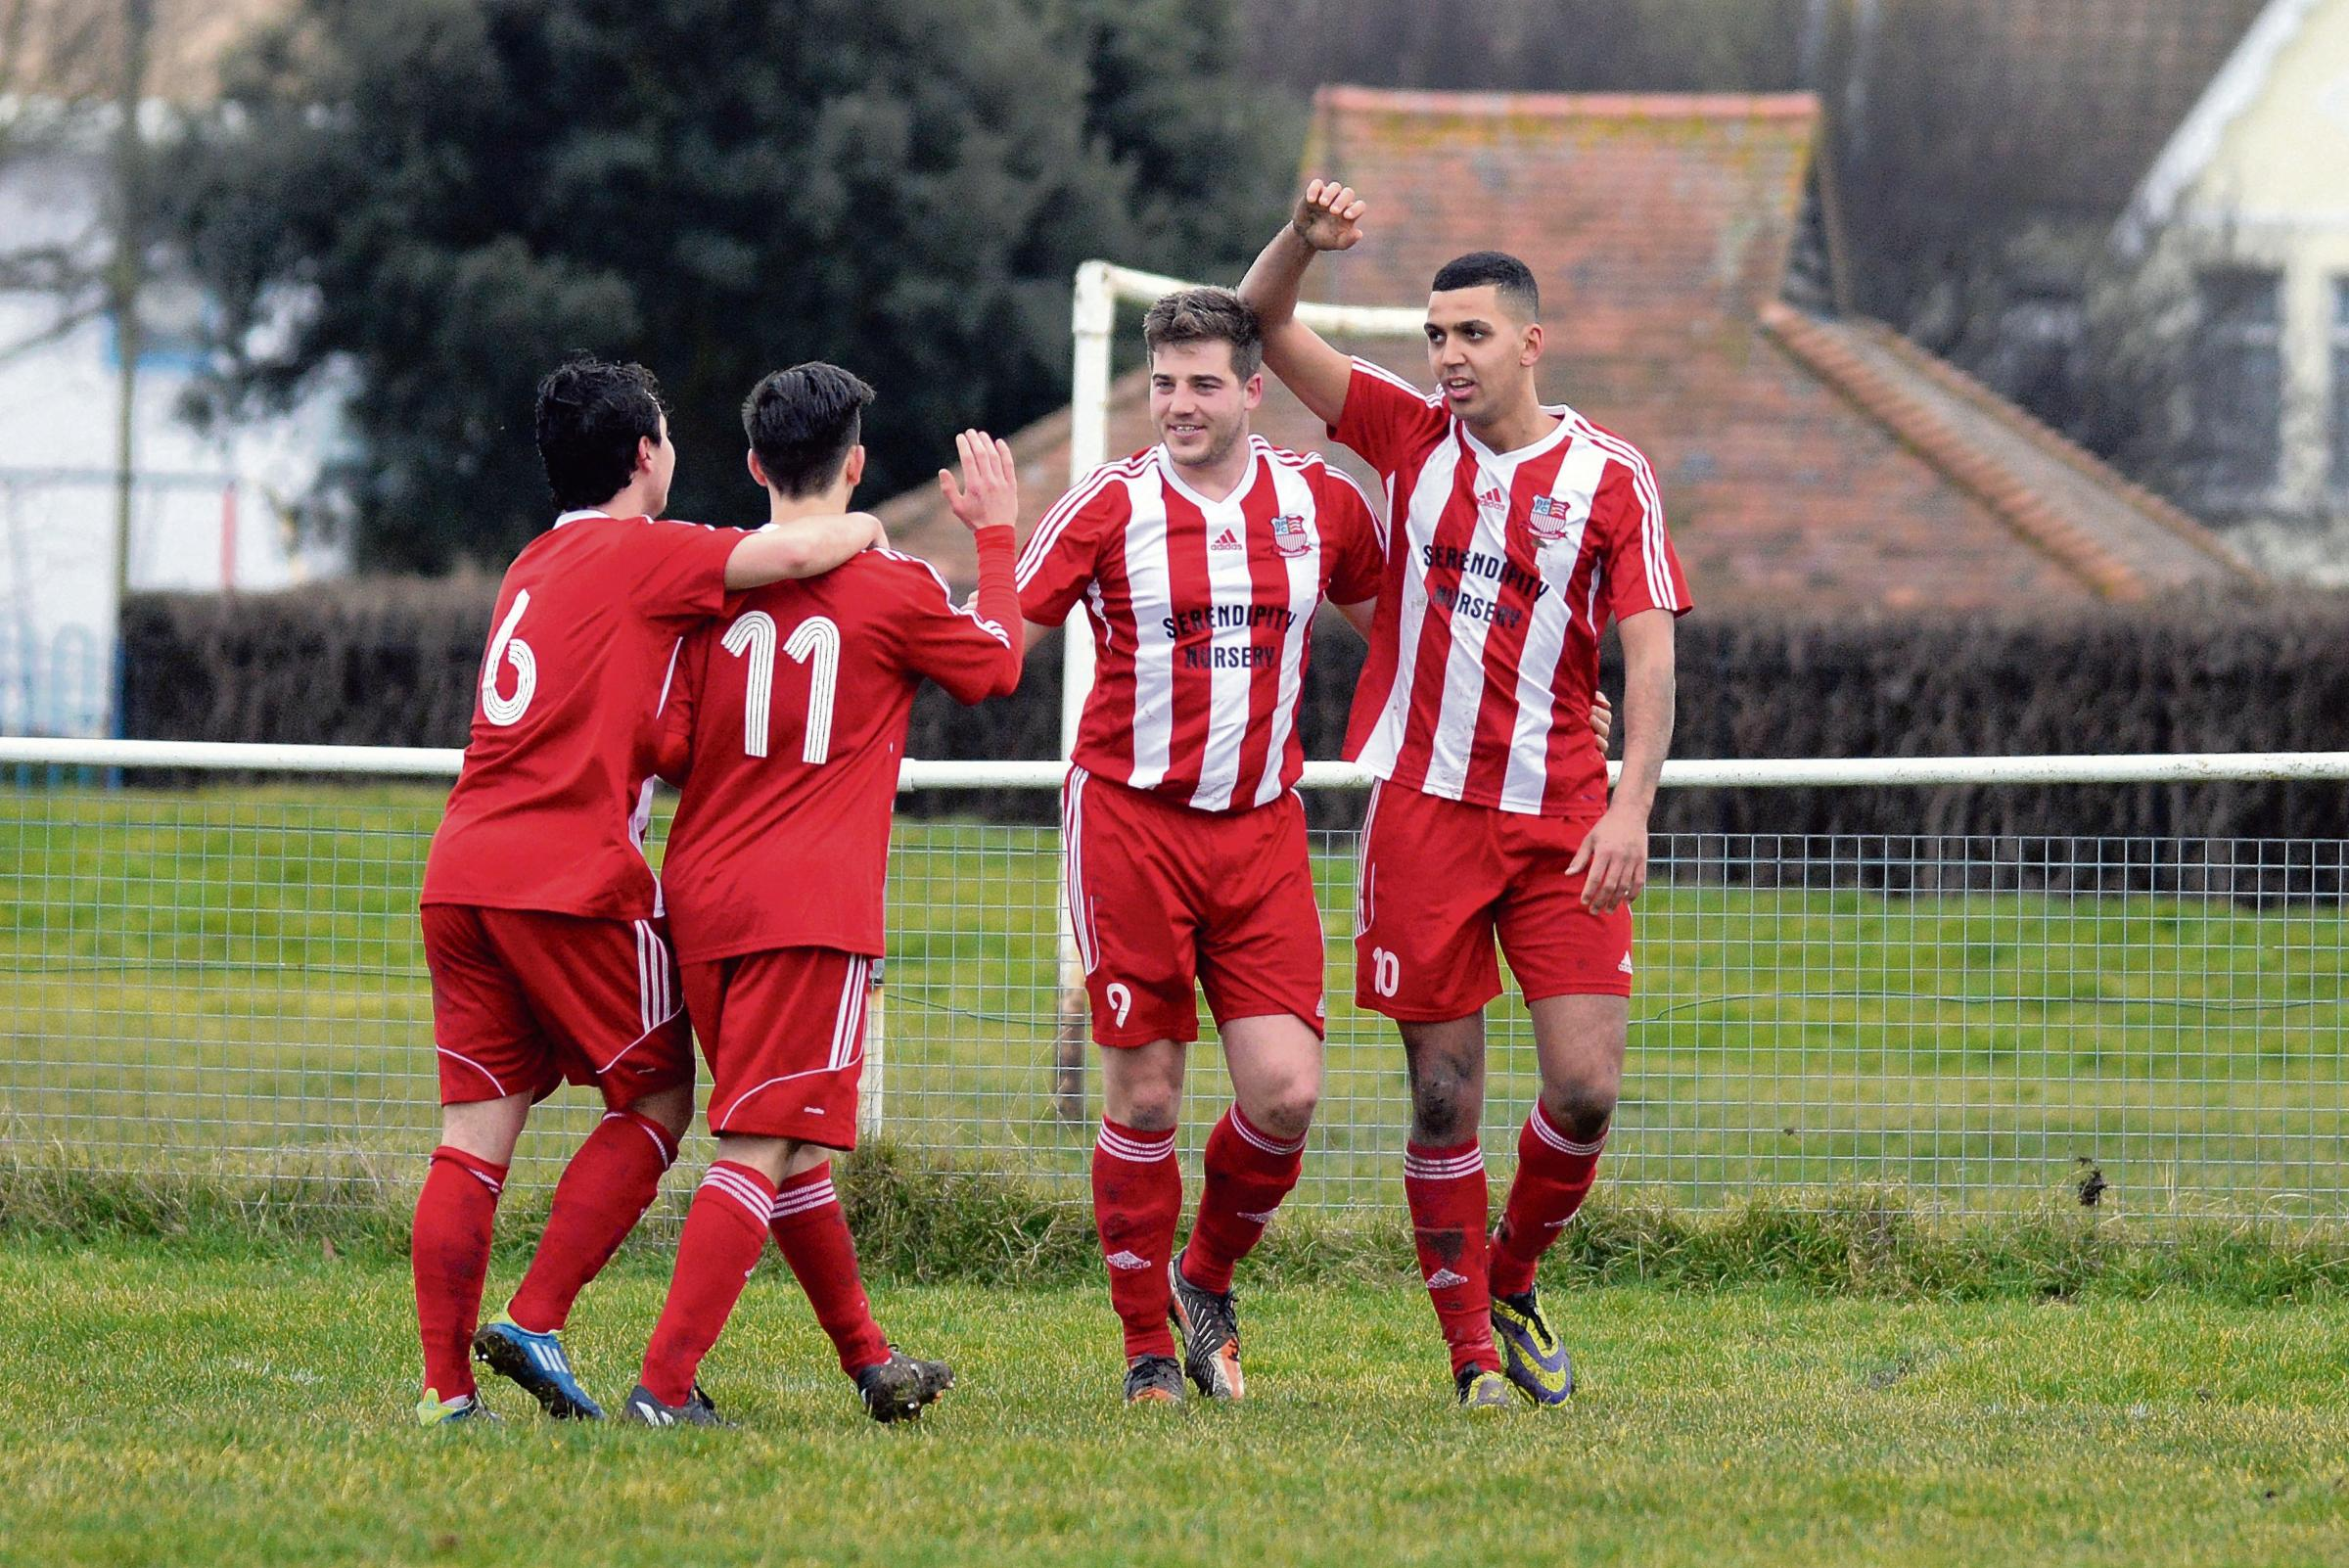 Smiles all around - Whitnell, second right, scored the winner